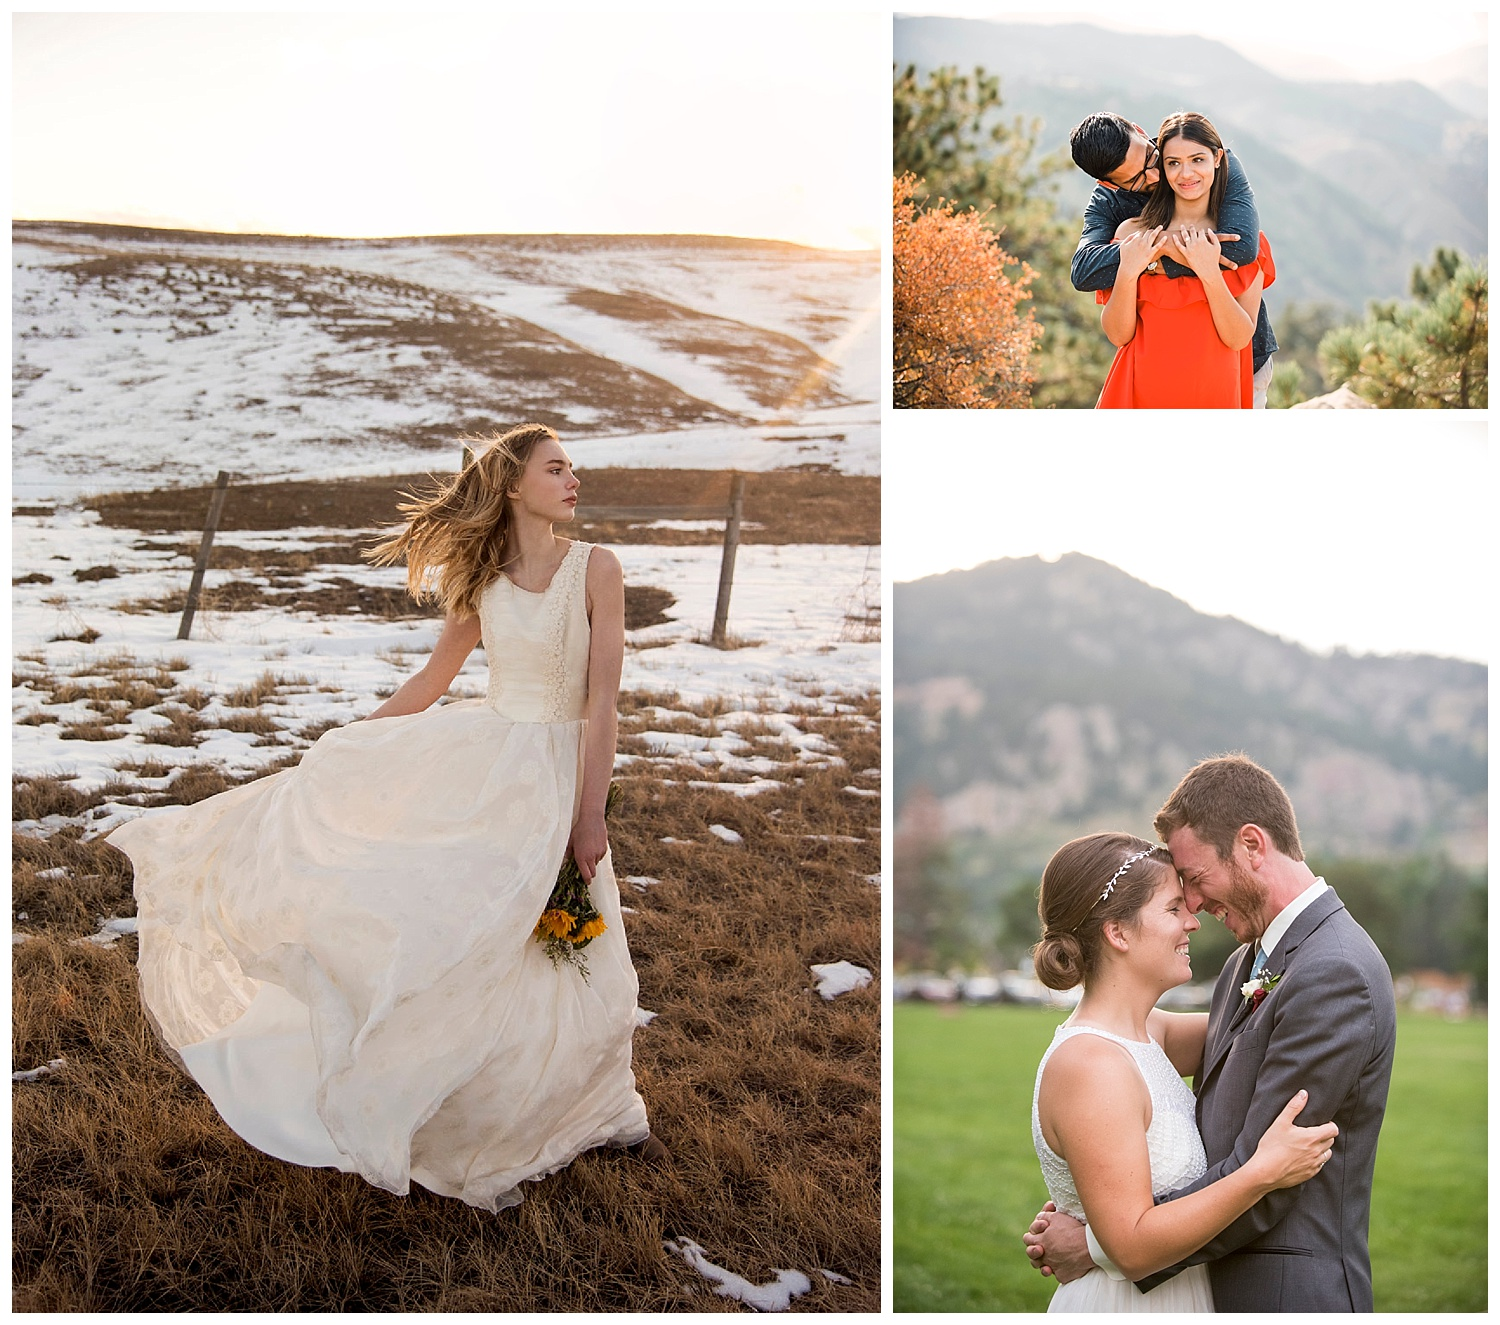 Mountain_Elopements_Apollo_Fields_Destination_Wedding_Photographers_Adventure_002.jpg